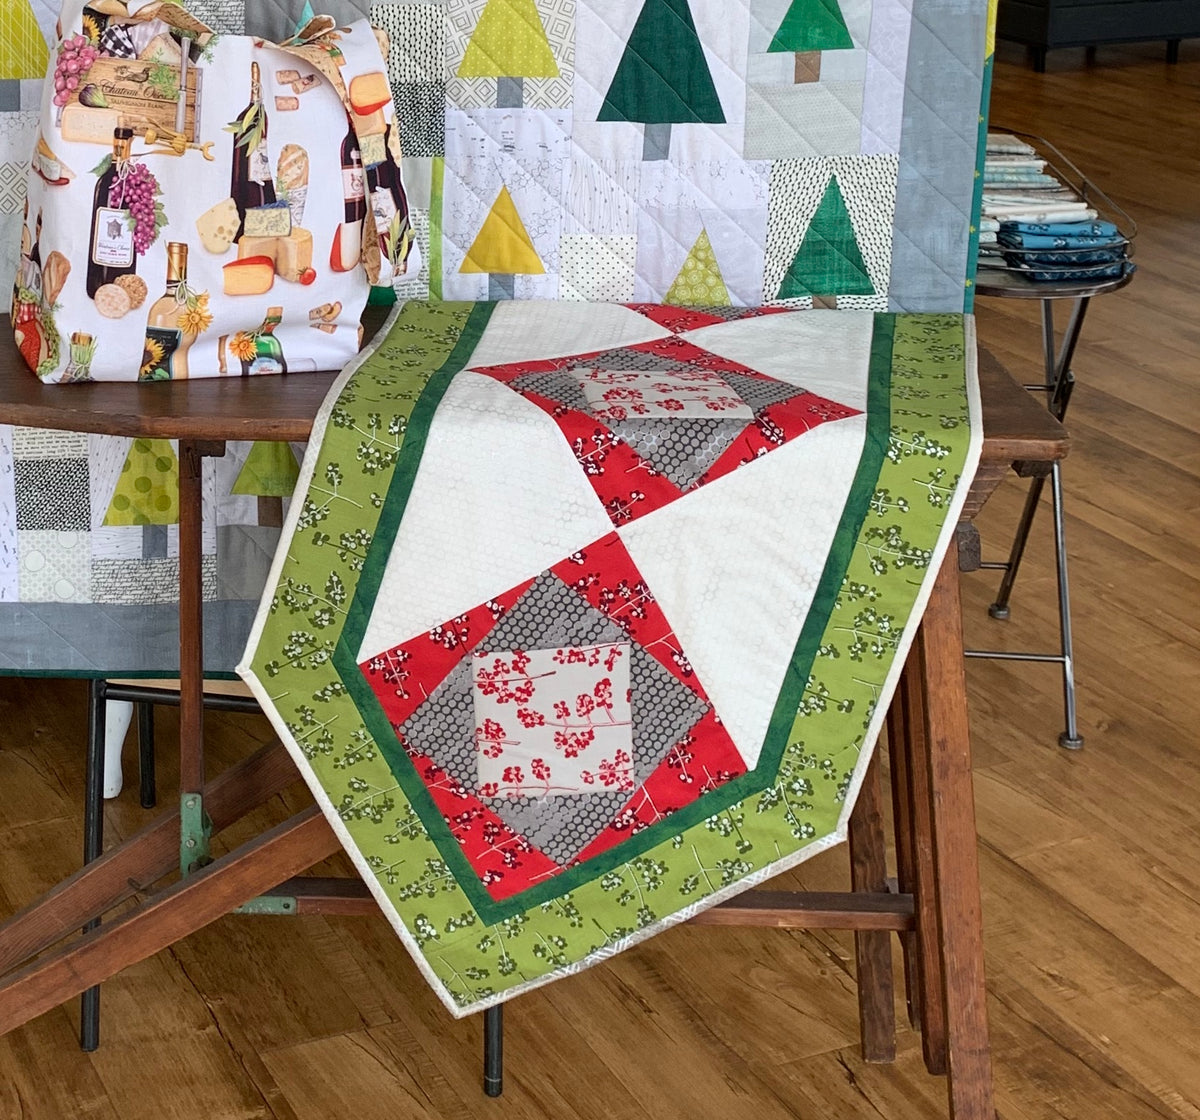 Tilted Squares Table Runner Kit